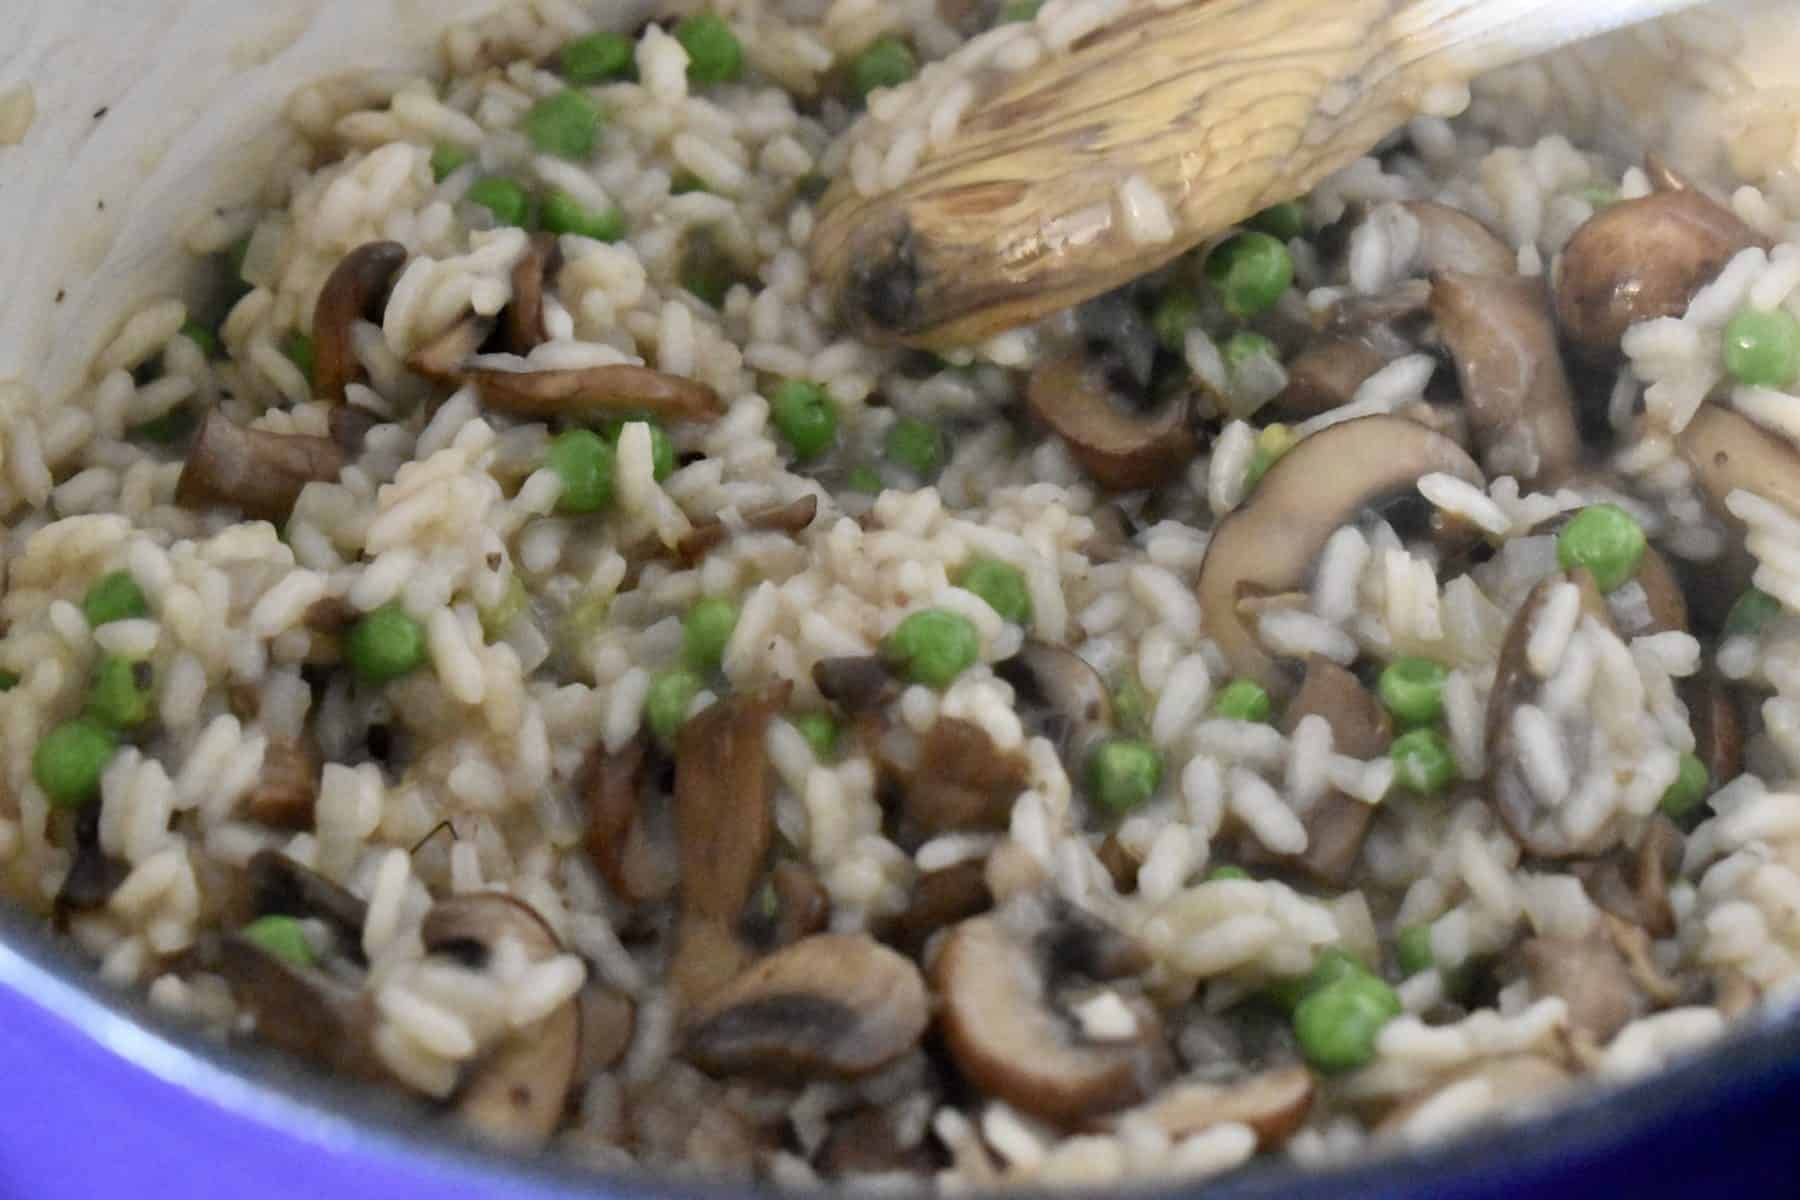 Peas added to the pot of risotto.